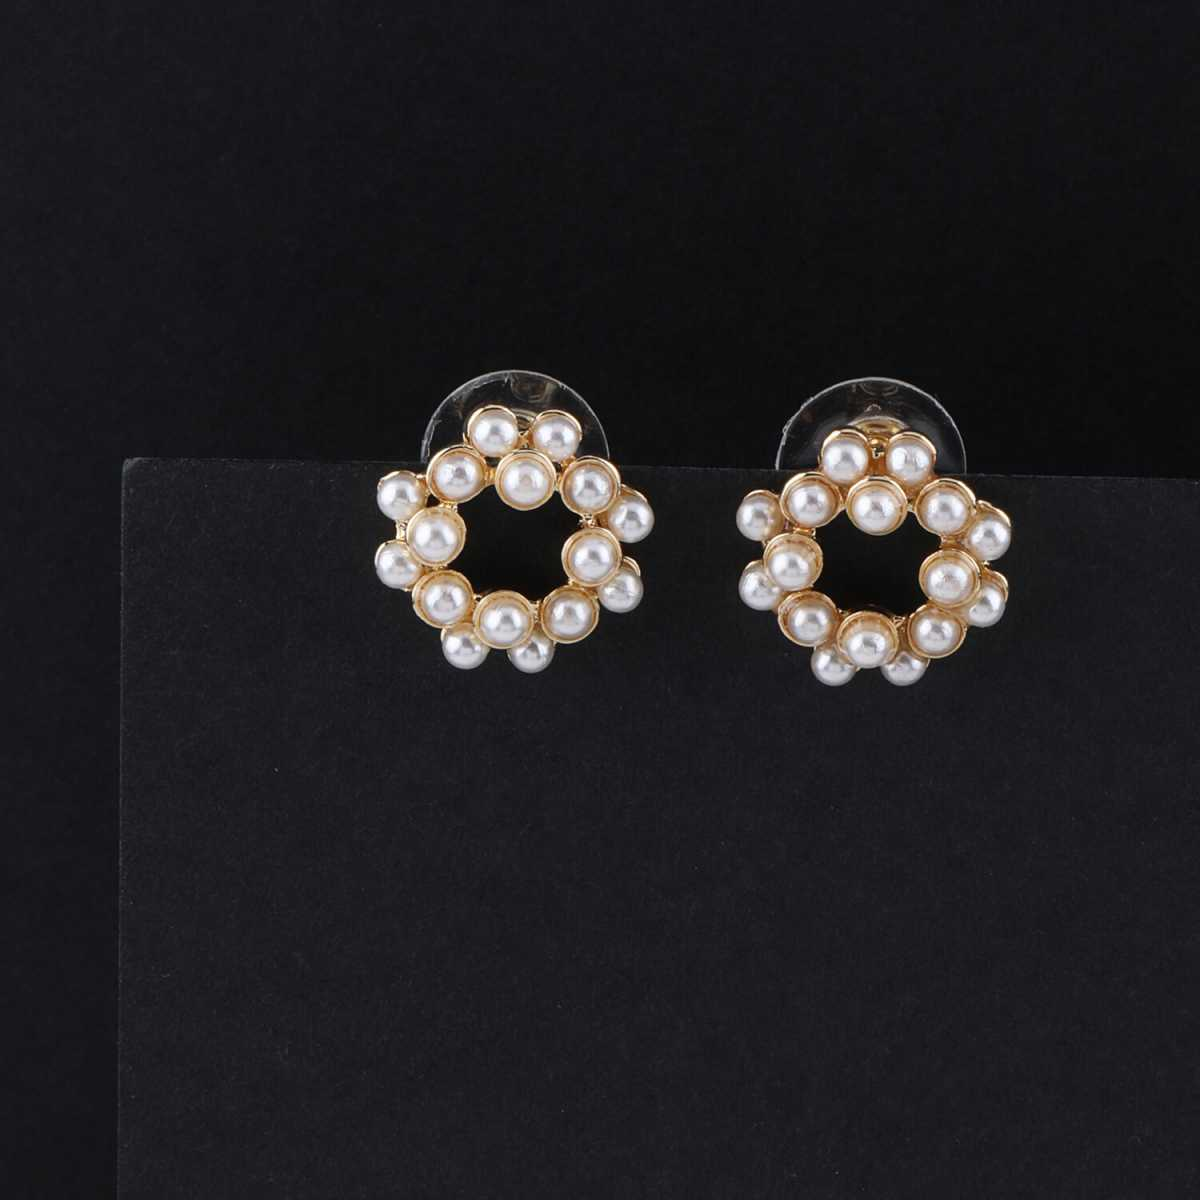 SILVER SHINE Party Wear Stylish Pearl Stud Earring For Women Girl